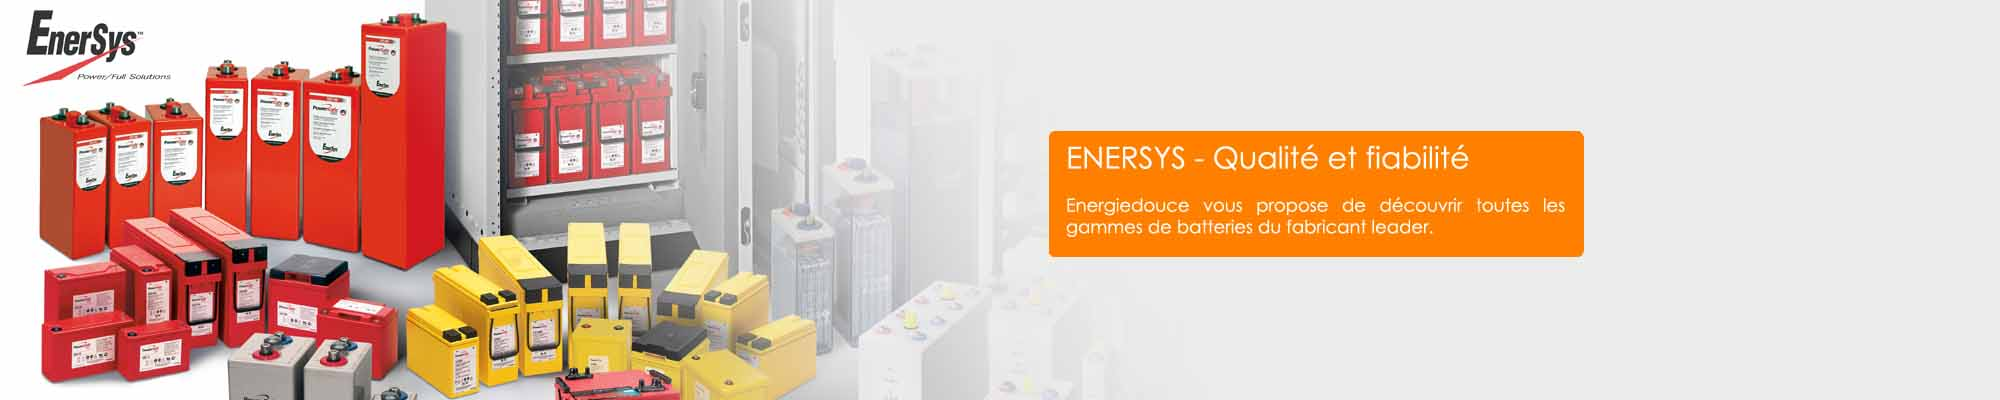 4780726Slide_Enersys_gammes_batteries